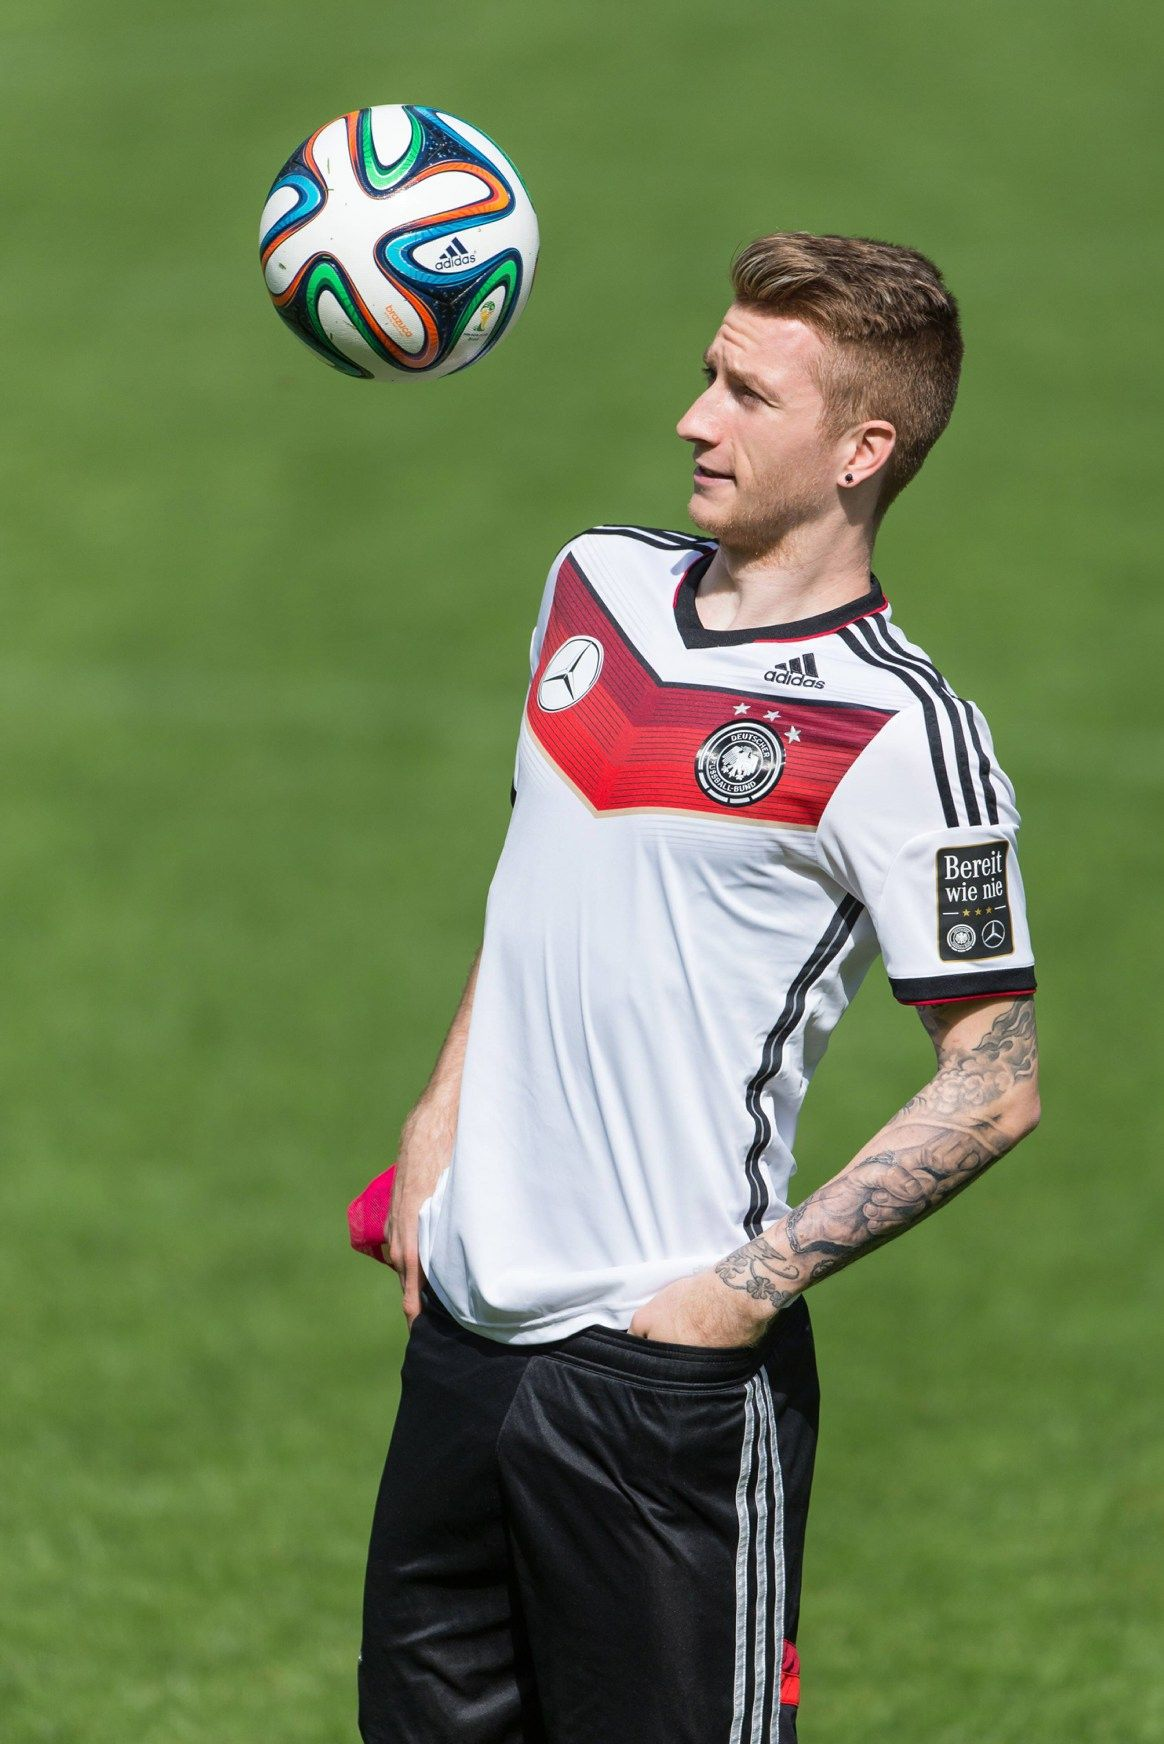 Marco Reus Hairstyle Name I Want This Man At Fc Barcelona I Like The Way He Play Football